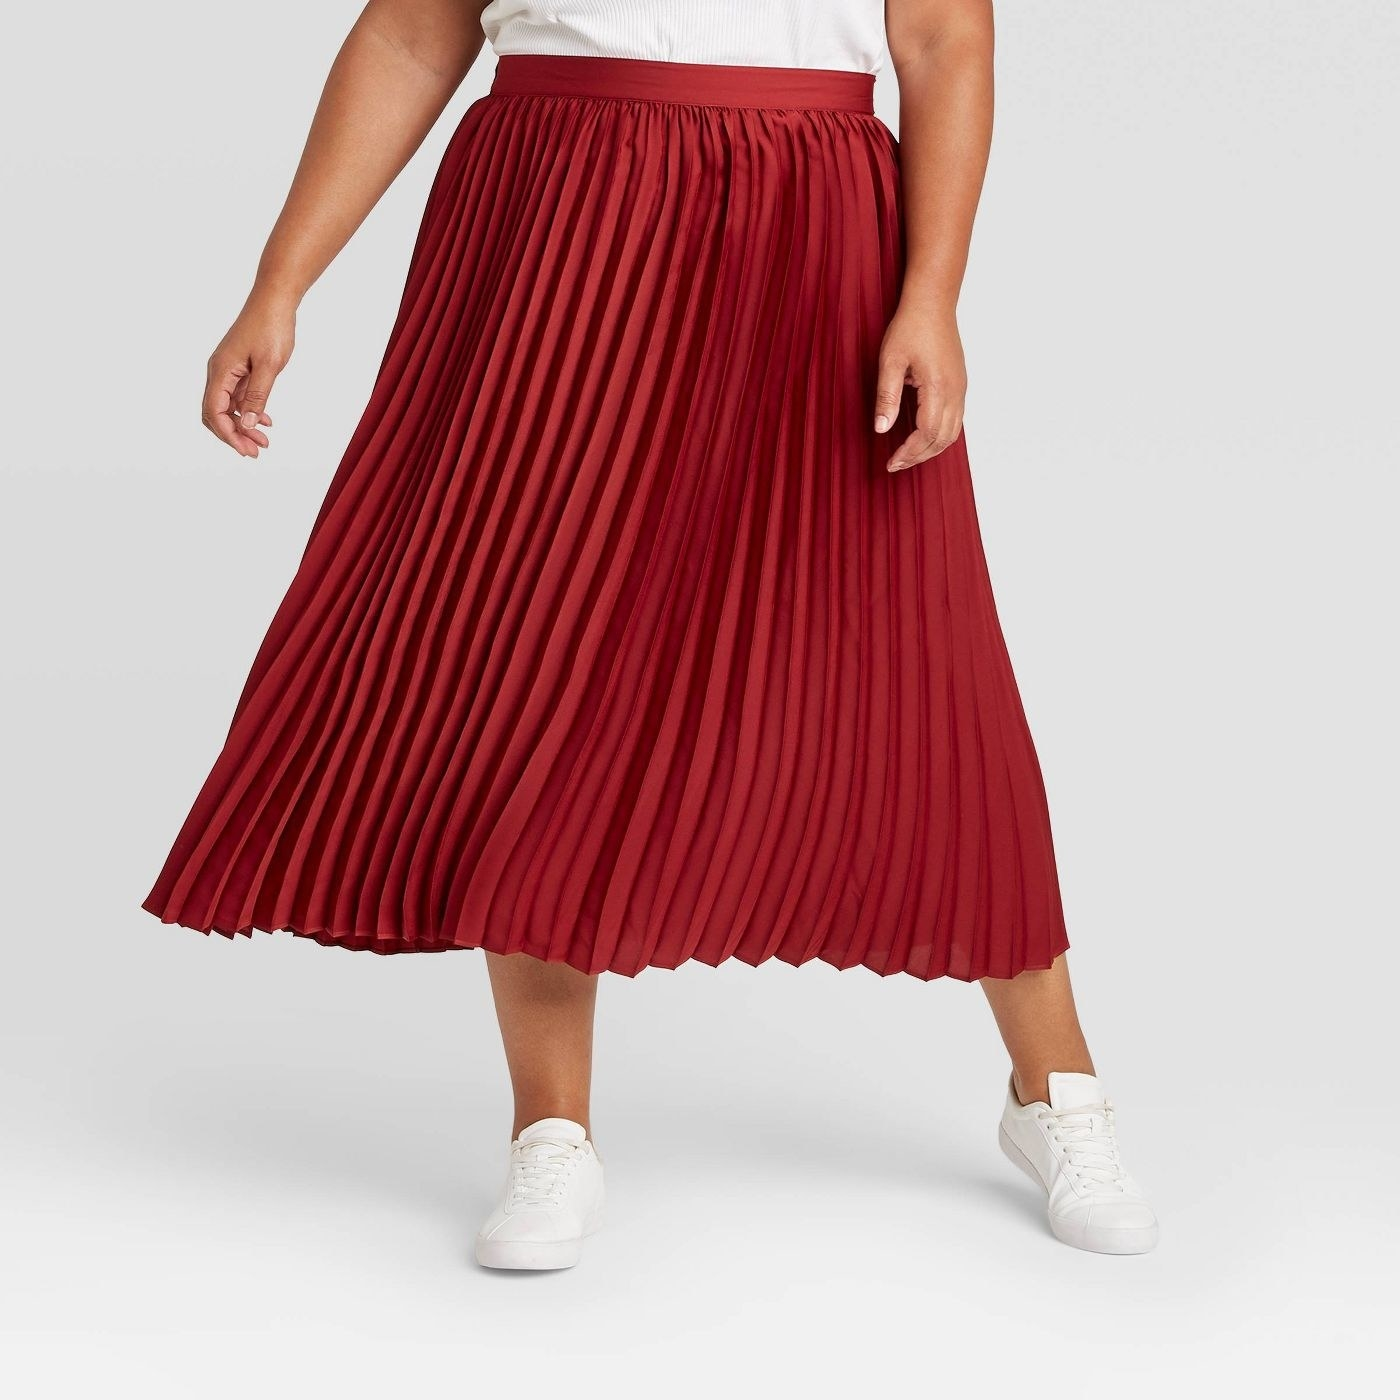 Model in red pleated skirt and white sneakers